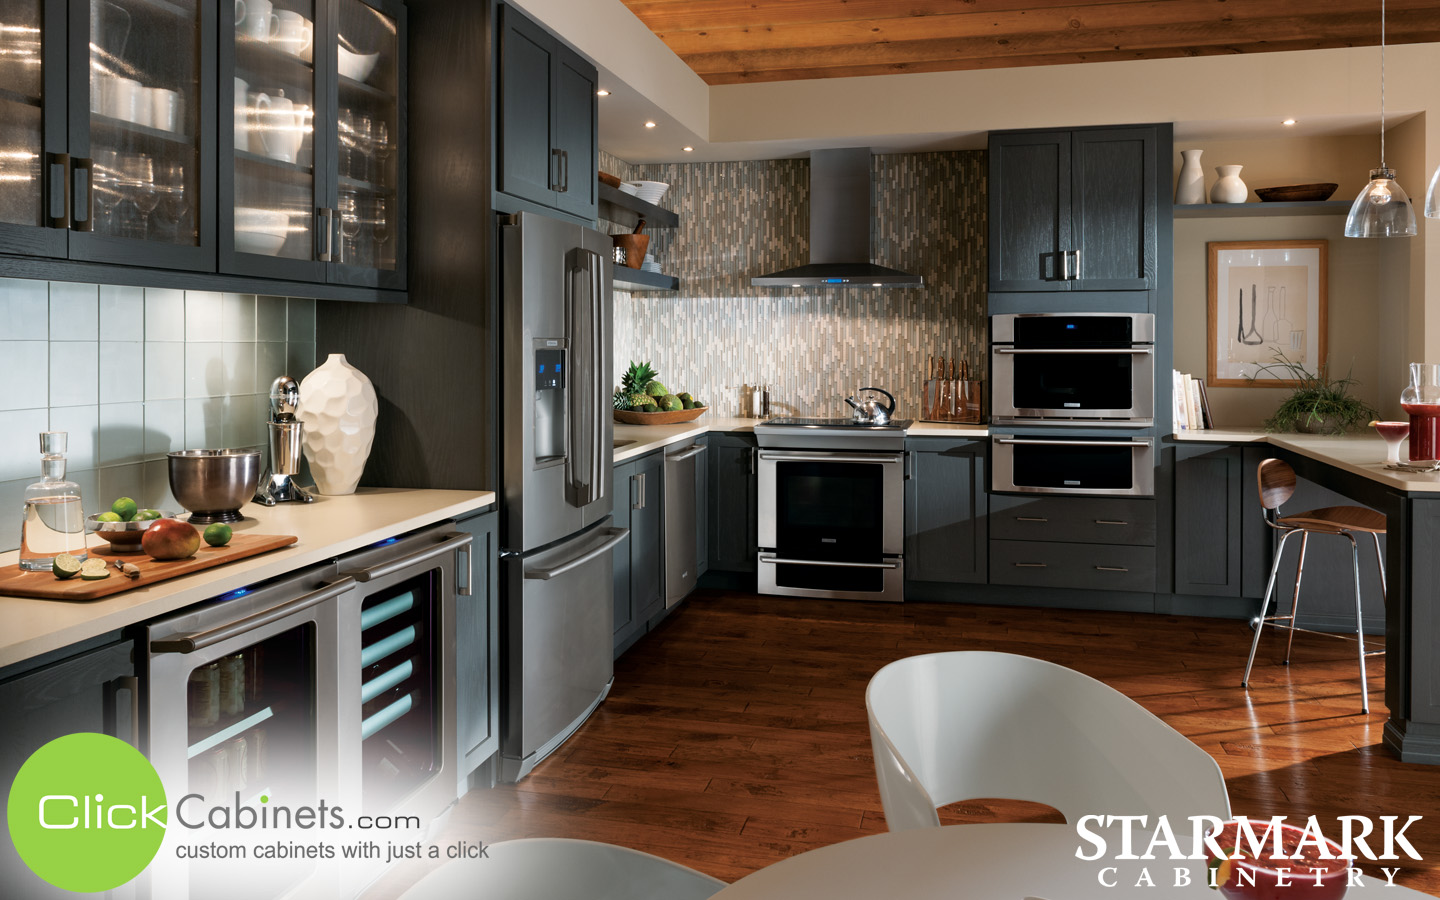 click cabinets 2000 certificate for kitchen cabinets makeover your kitchen cabinets with the help of the rust